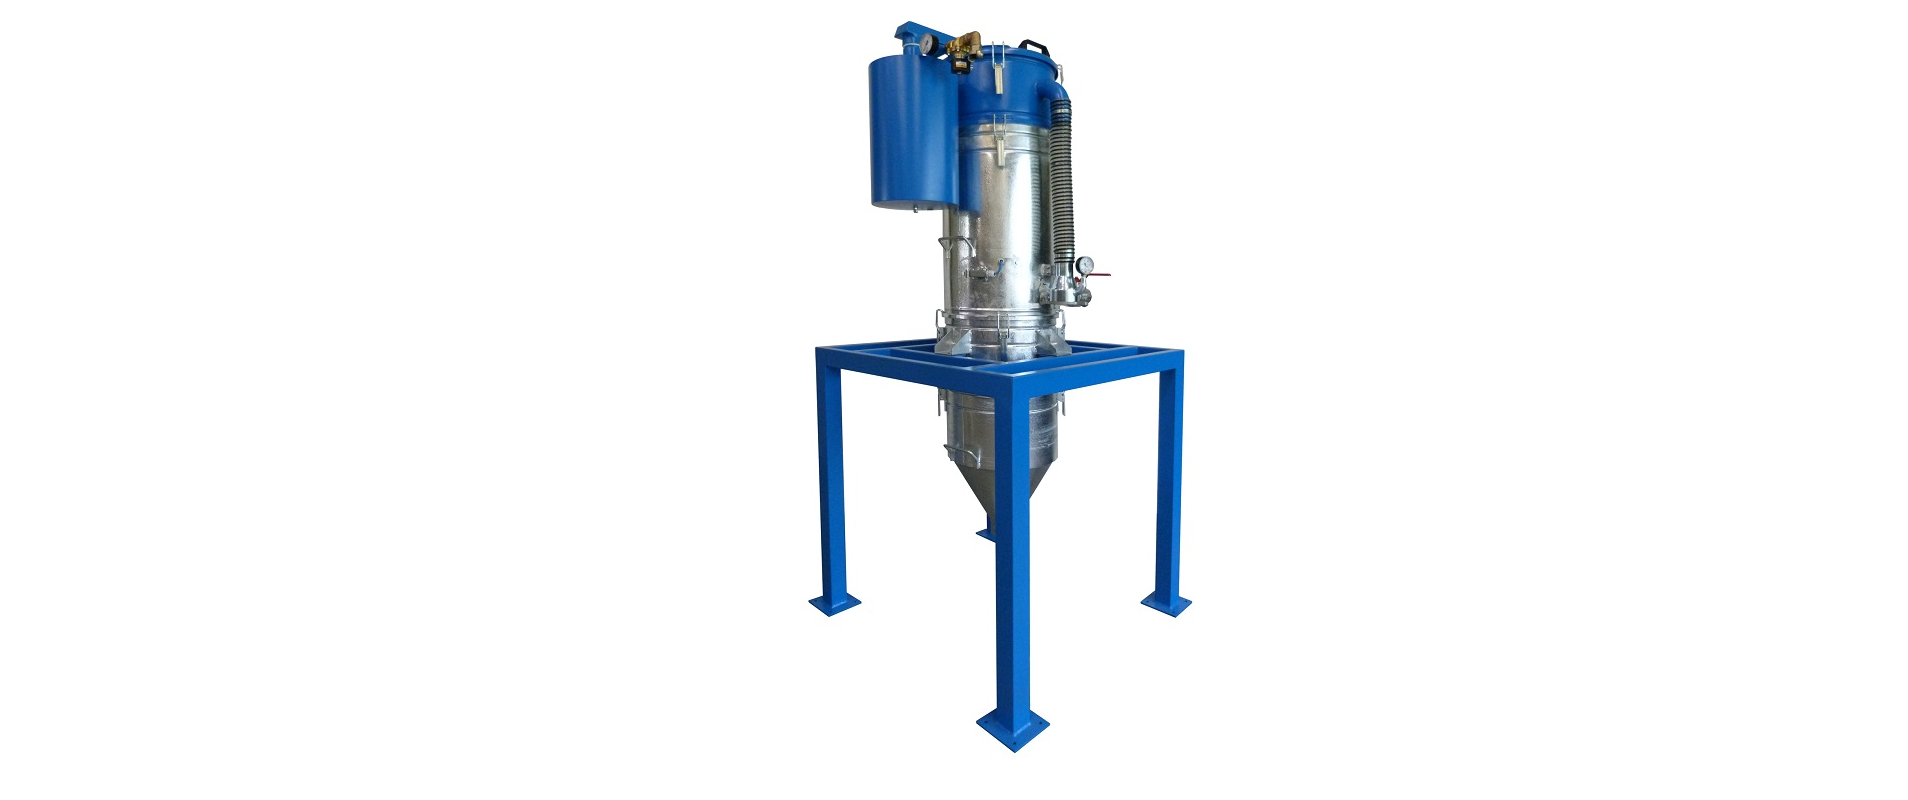 Druckluftsauger DDS 119-Silo-Reclean-H-ATEX